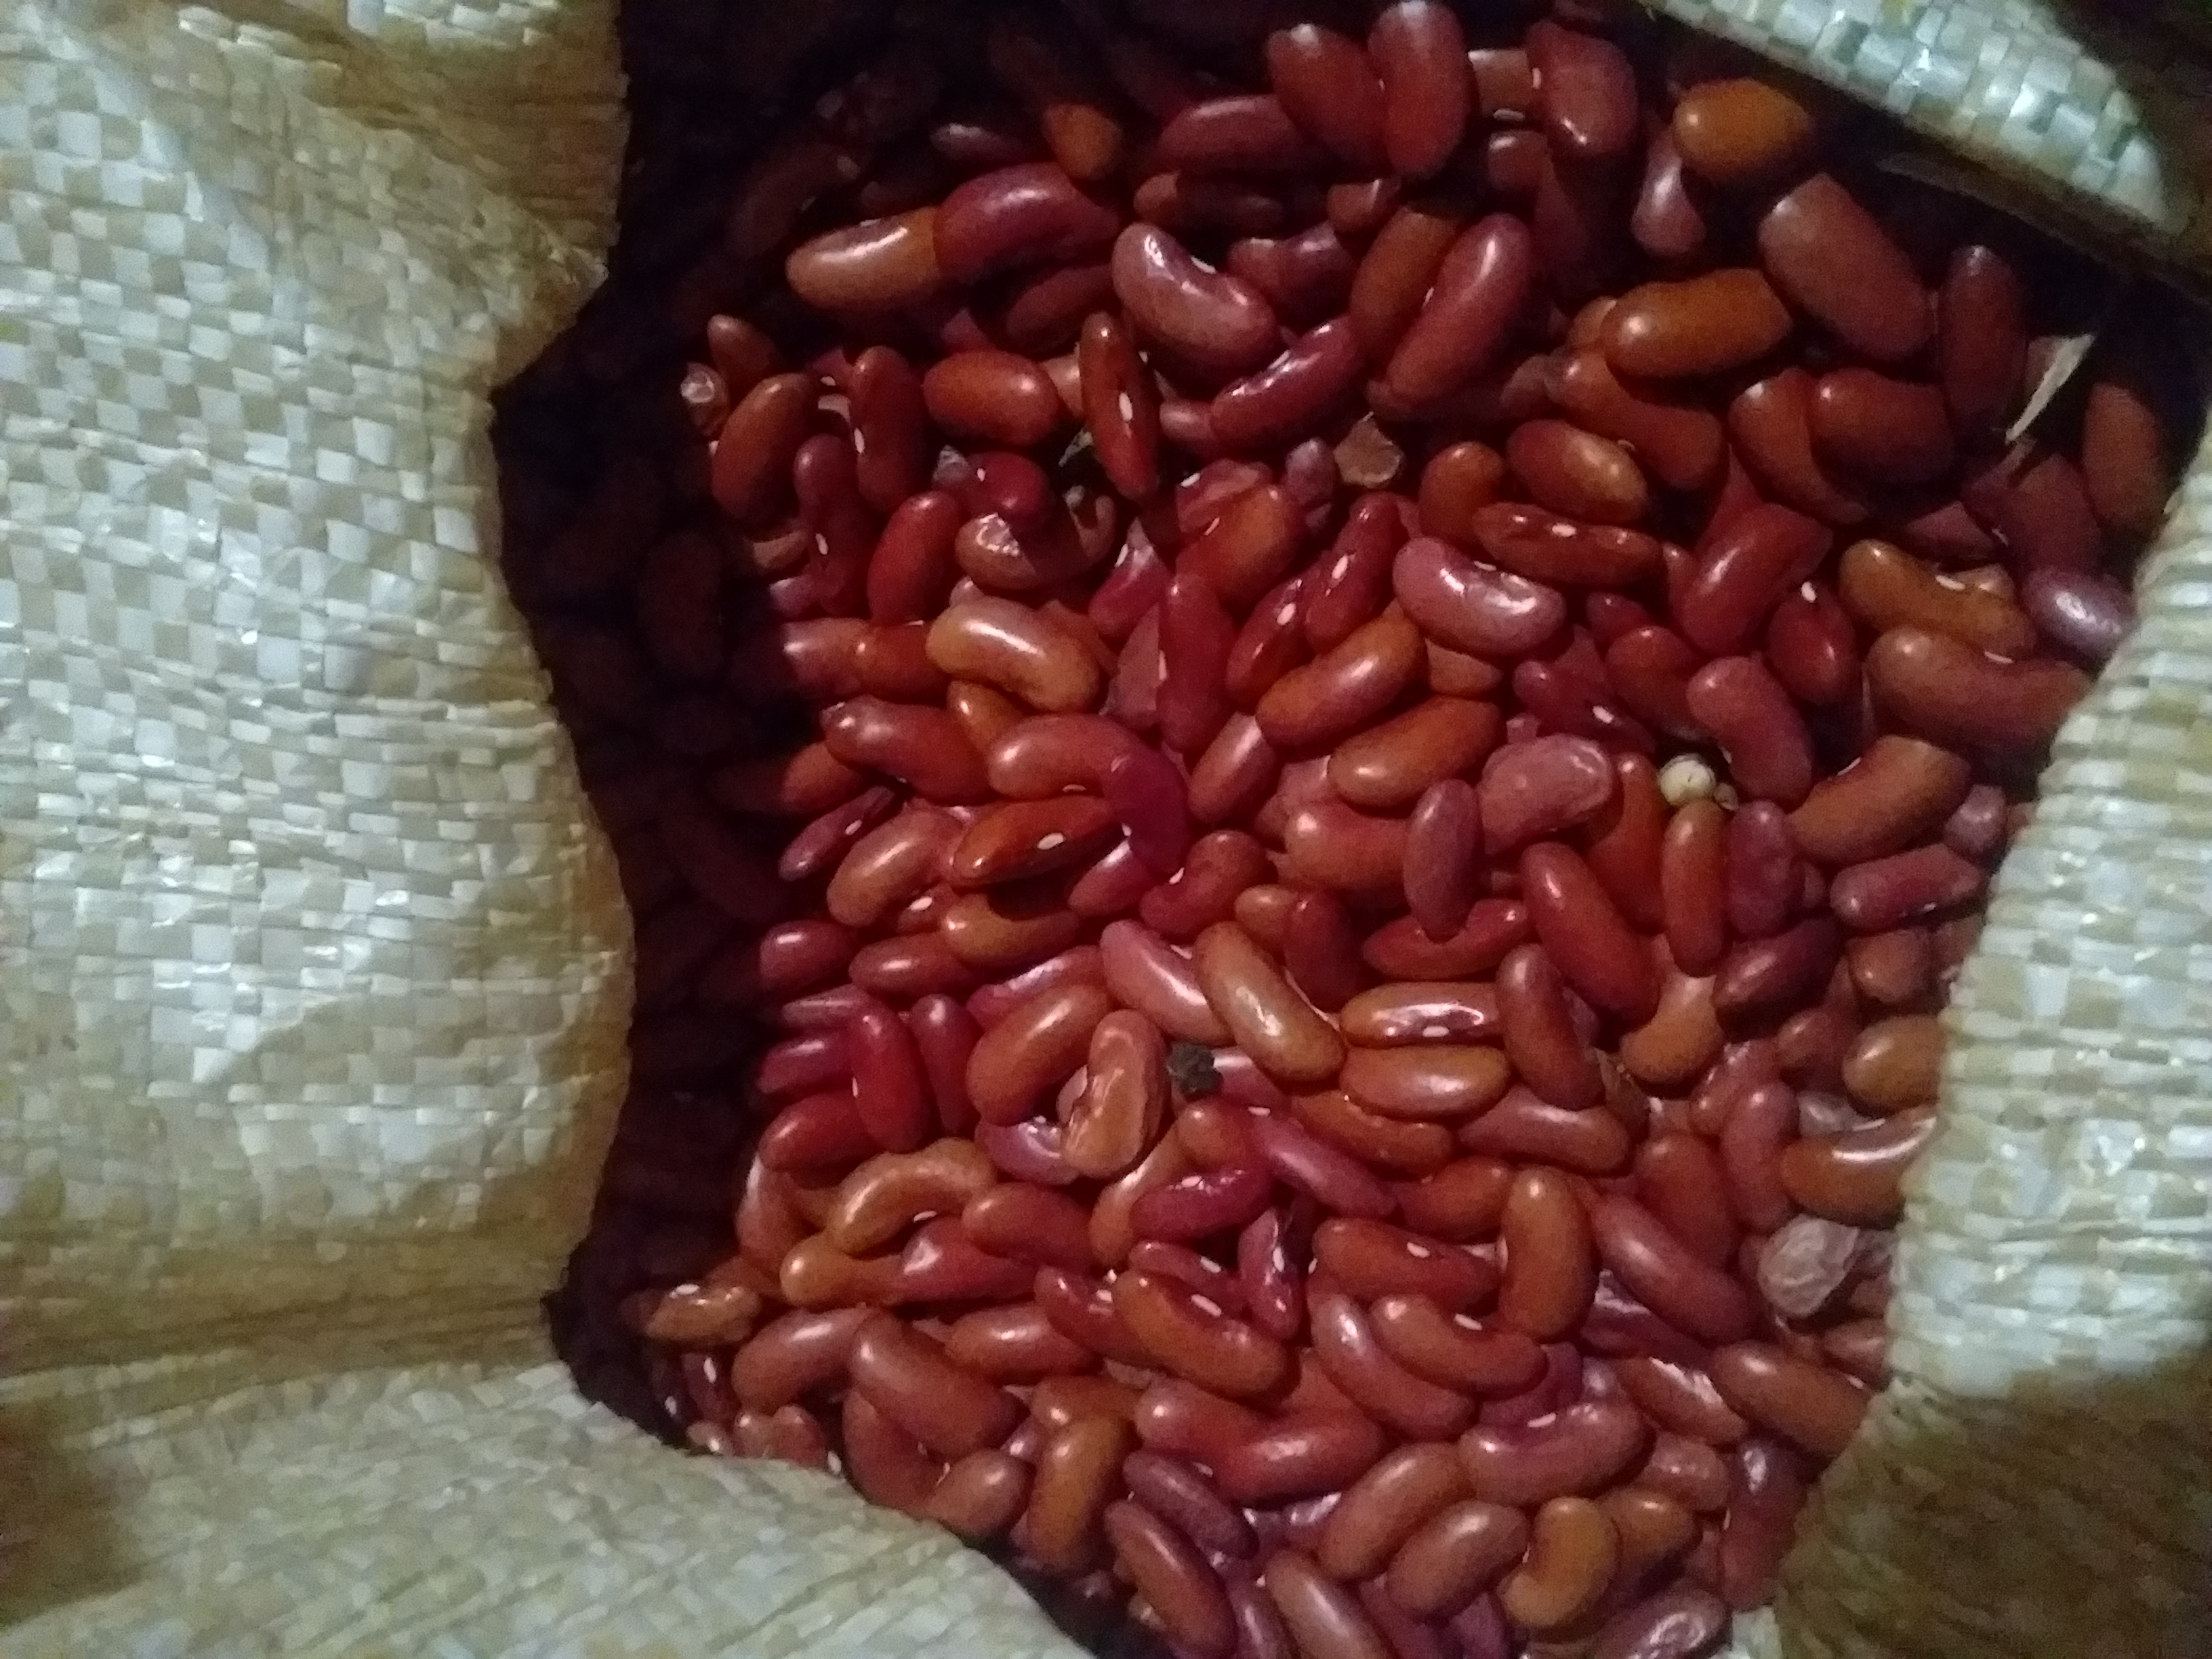 Bean for sale 1.50 de lbs in santa elena cayo